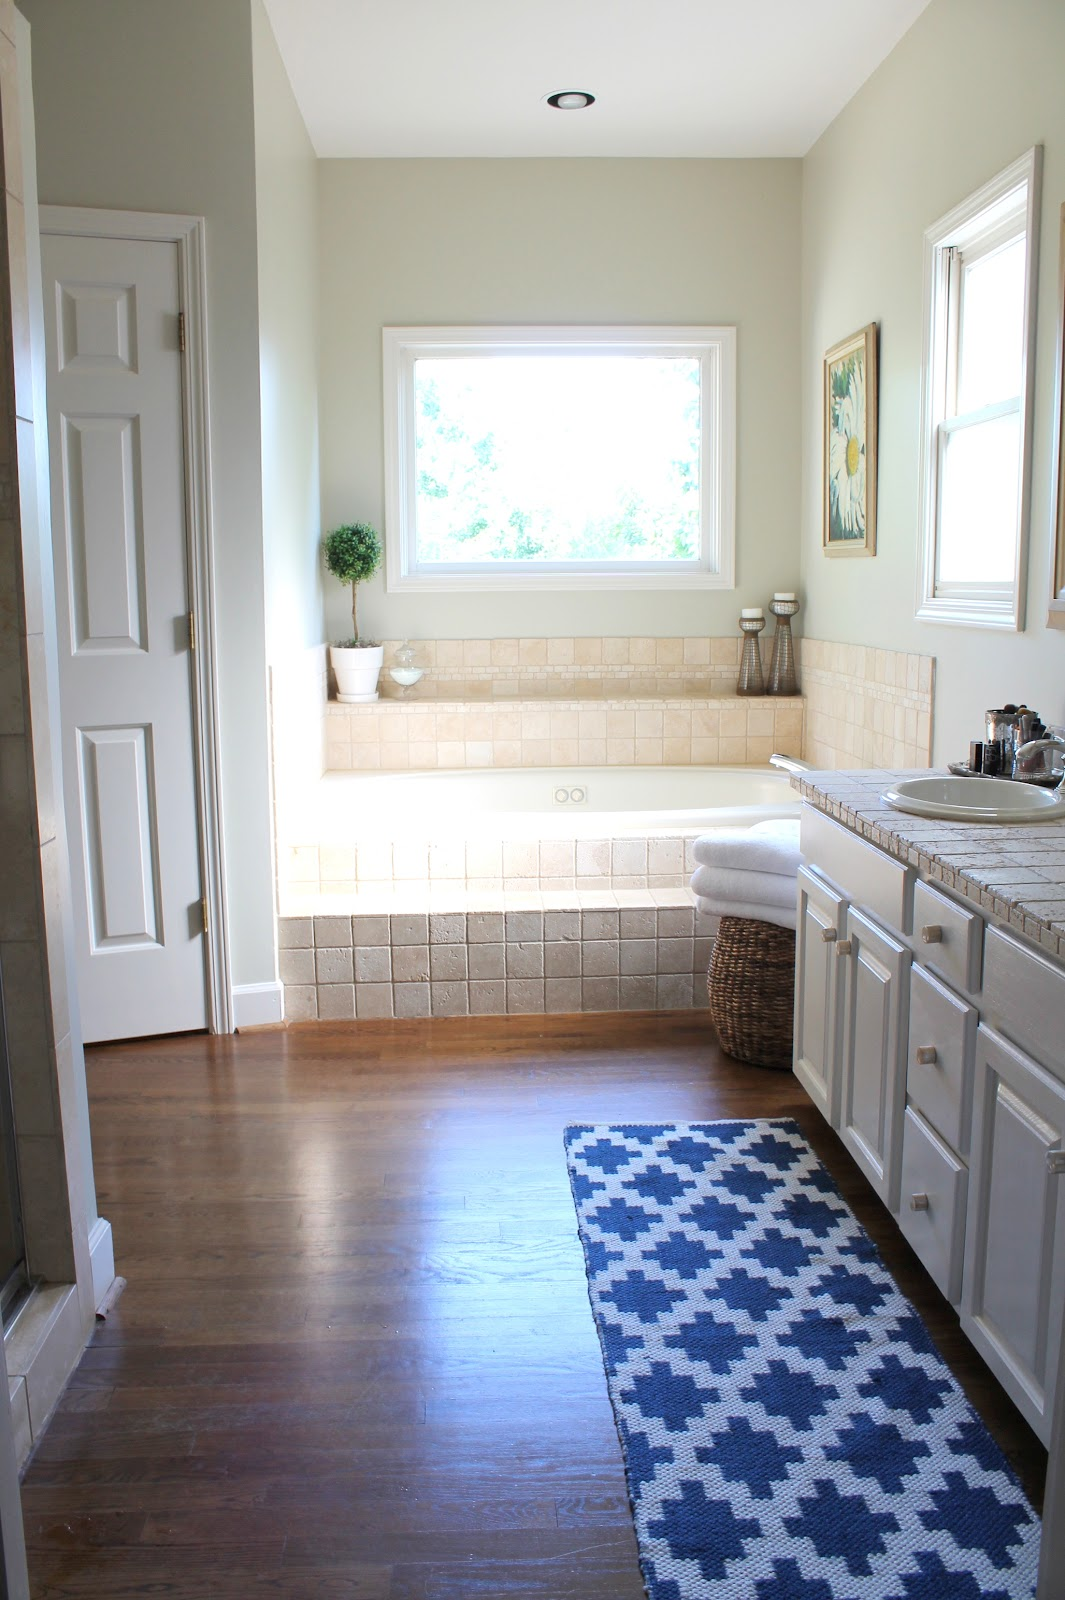 The Big Master Bathroom Debate - Our Fifth House Small Bathroom Designs With Wood Html on bedrooms with wood, white bathroom with wood, bathroom decorating with wood, lighting with wood, glass tiles with wood, small bathrooms tile, kitchen cabinets with wood, bathroom tiles with wood,